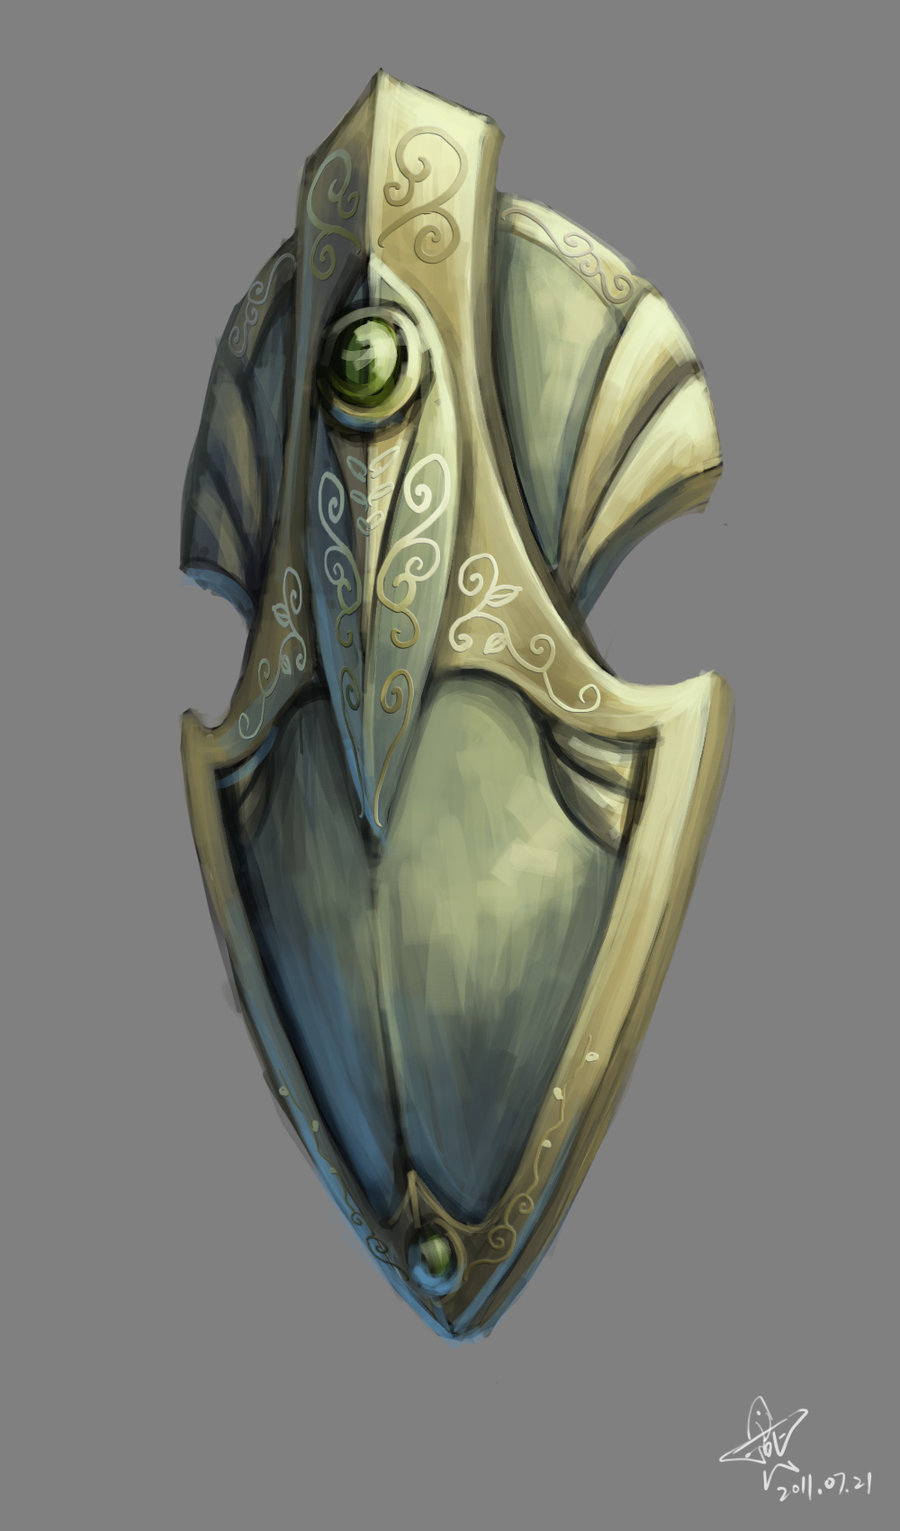 elven-shield-by-yanzi-5-d4ynljo.jpg